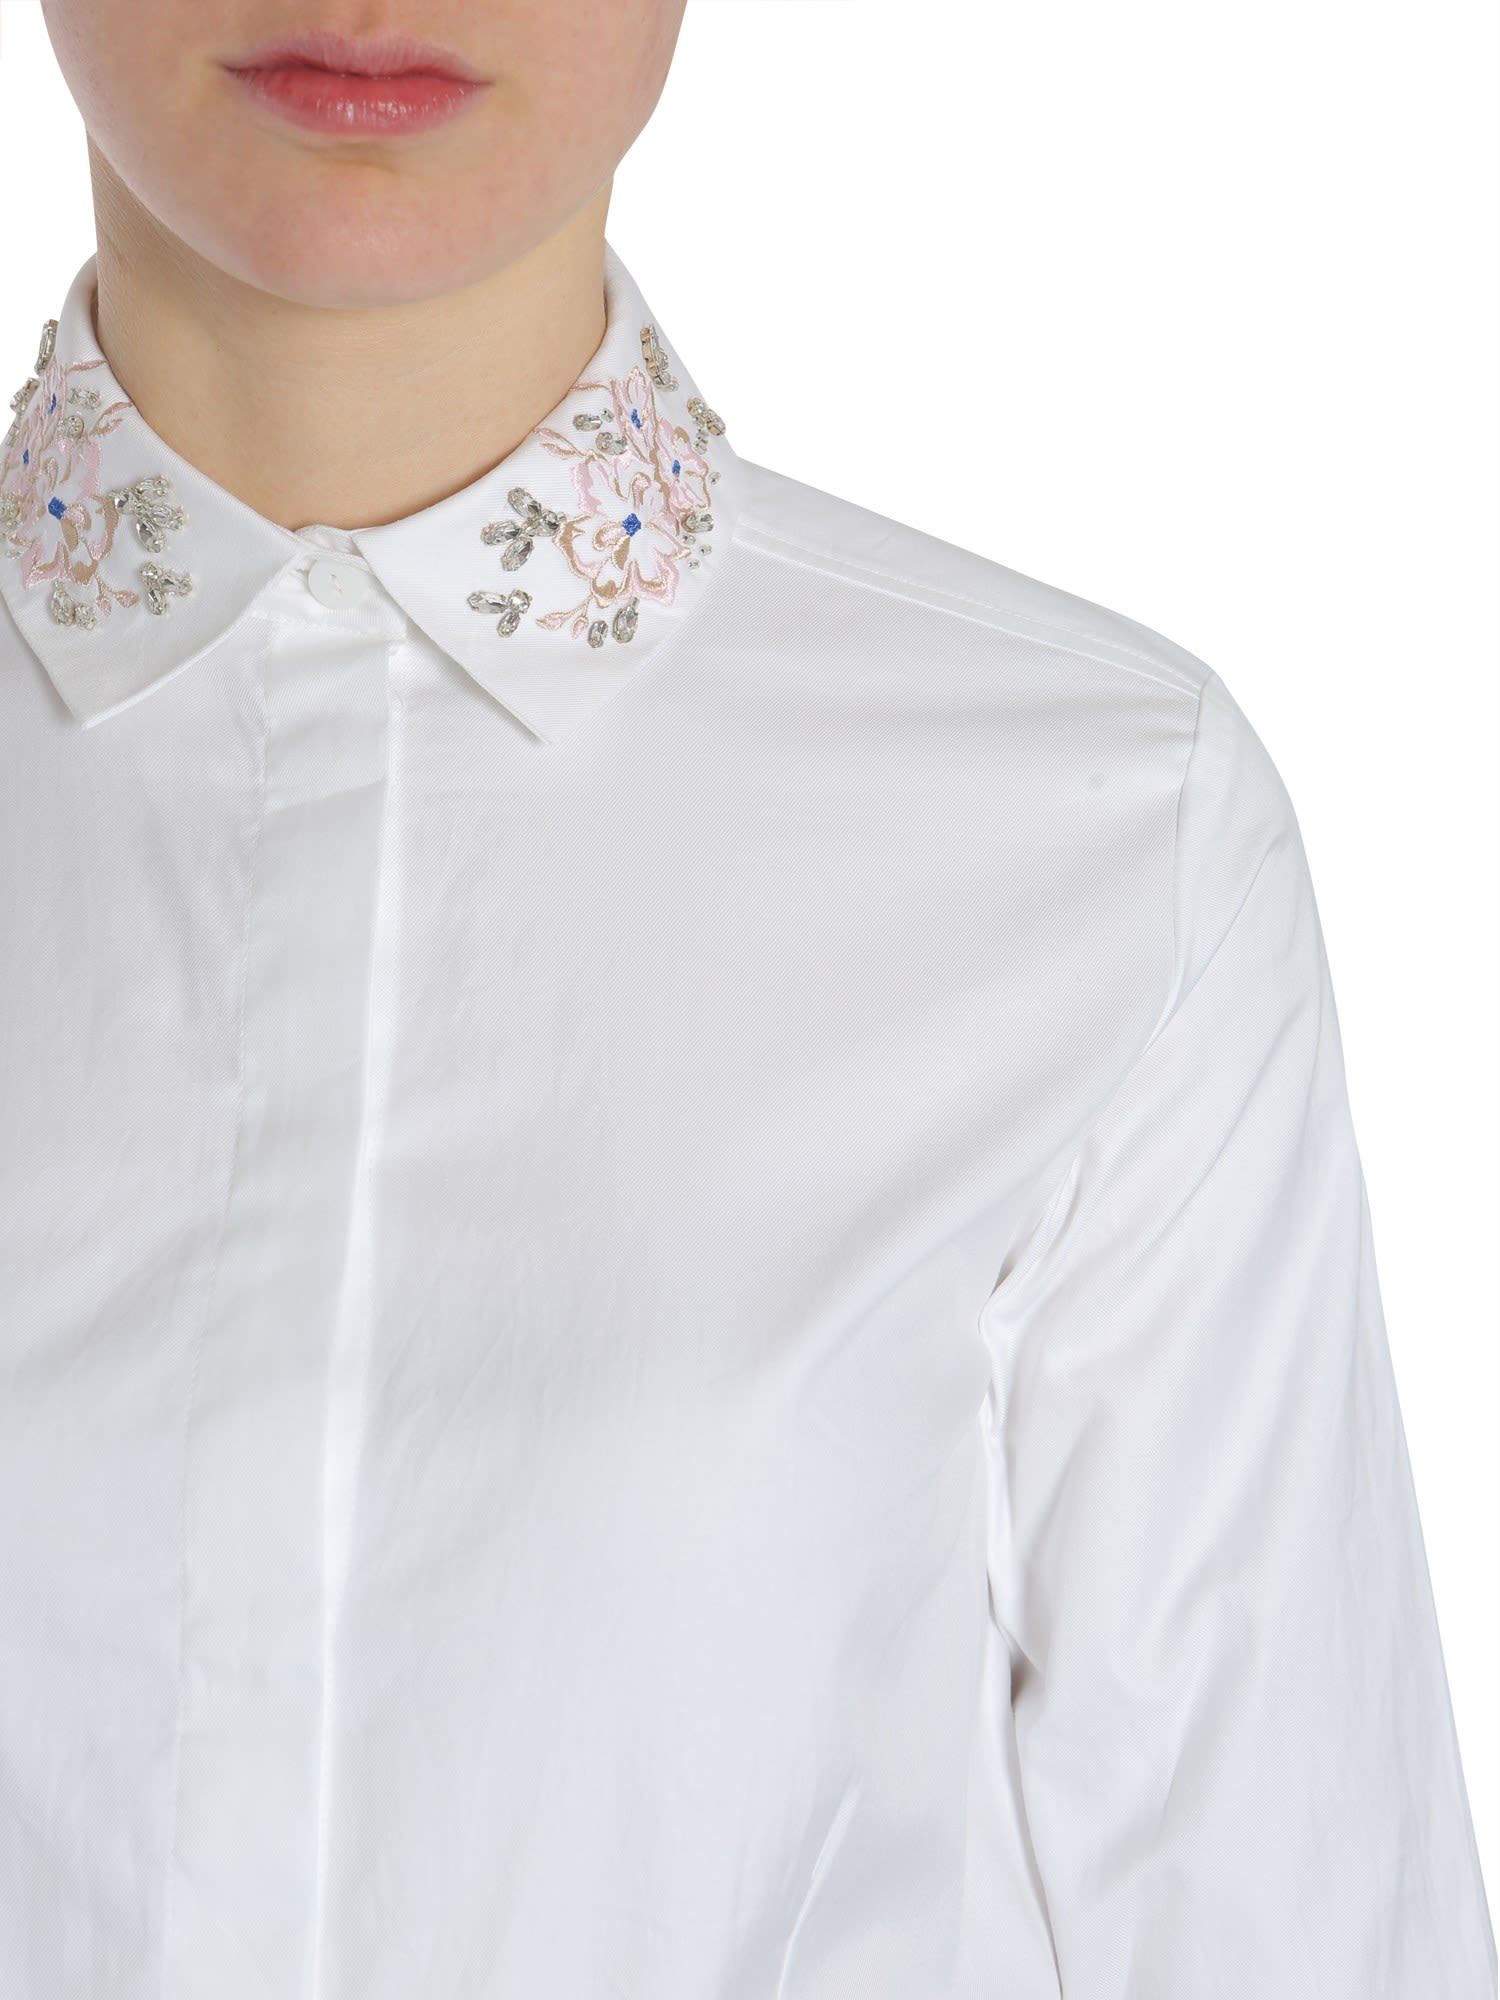 Carven Carven Shirt With Embroidered Collar Rosa 10040683 Italist